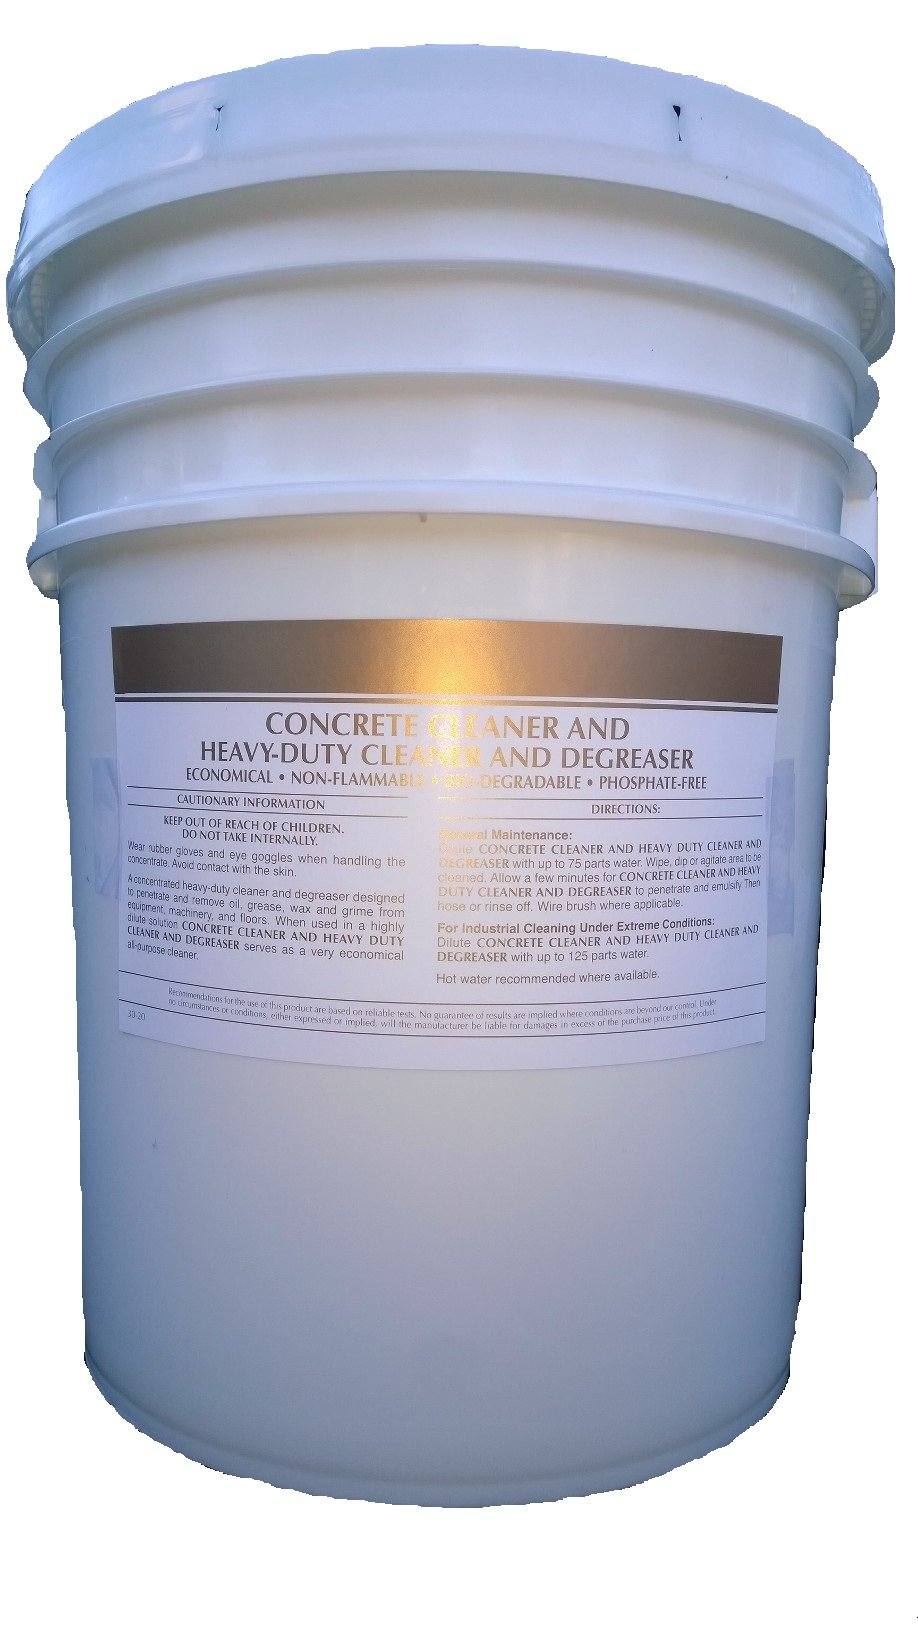 Patriot Chemical Sales 5 Gallon Pail Concrete Cleaner Degreaser Heavy-duty Industrial Strength Concentrate